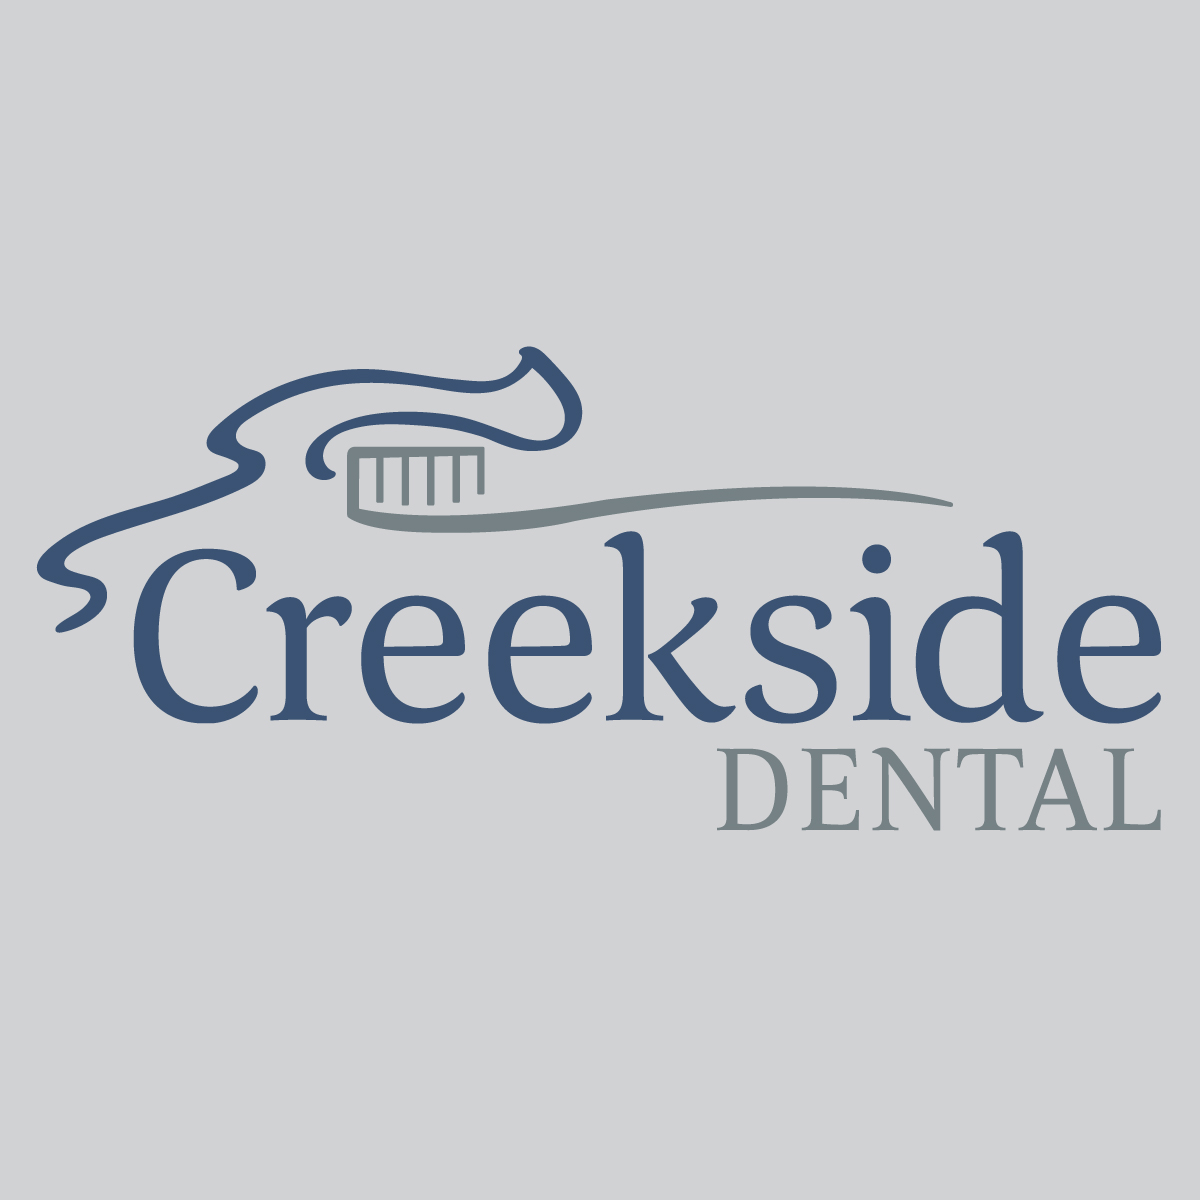 Creekside Dental logo design